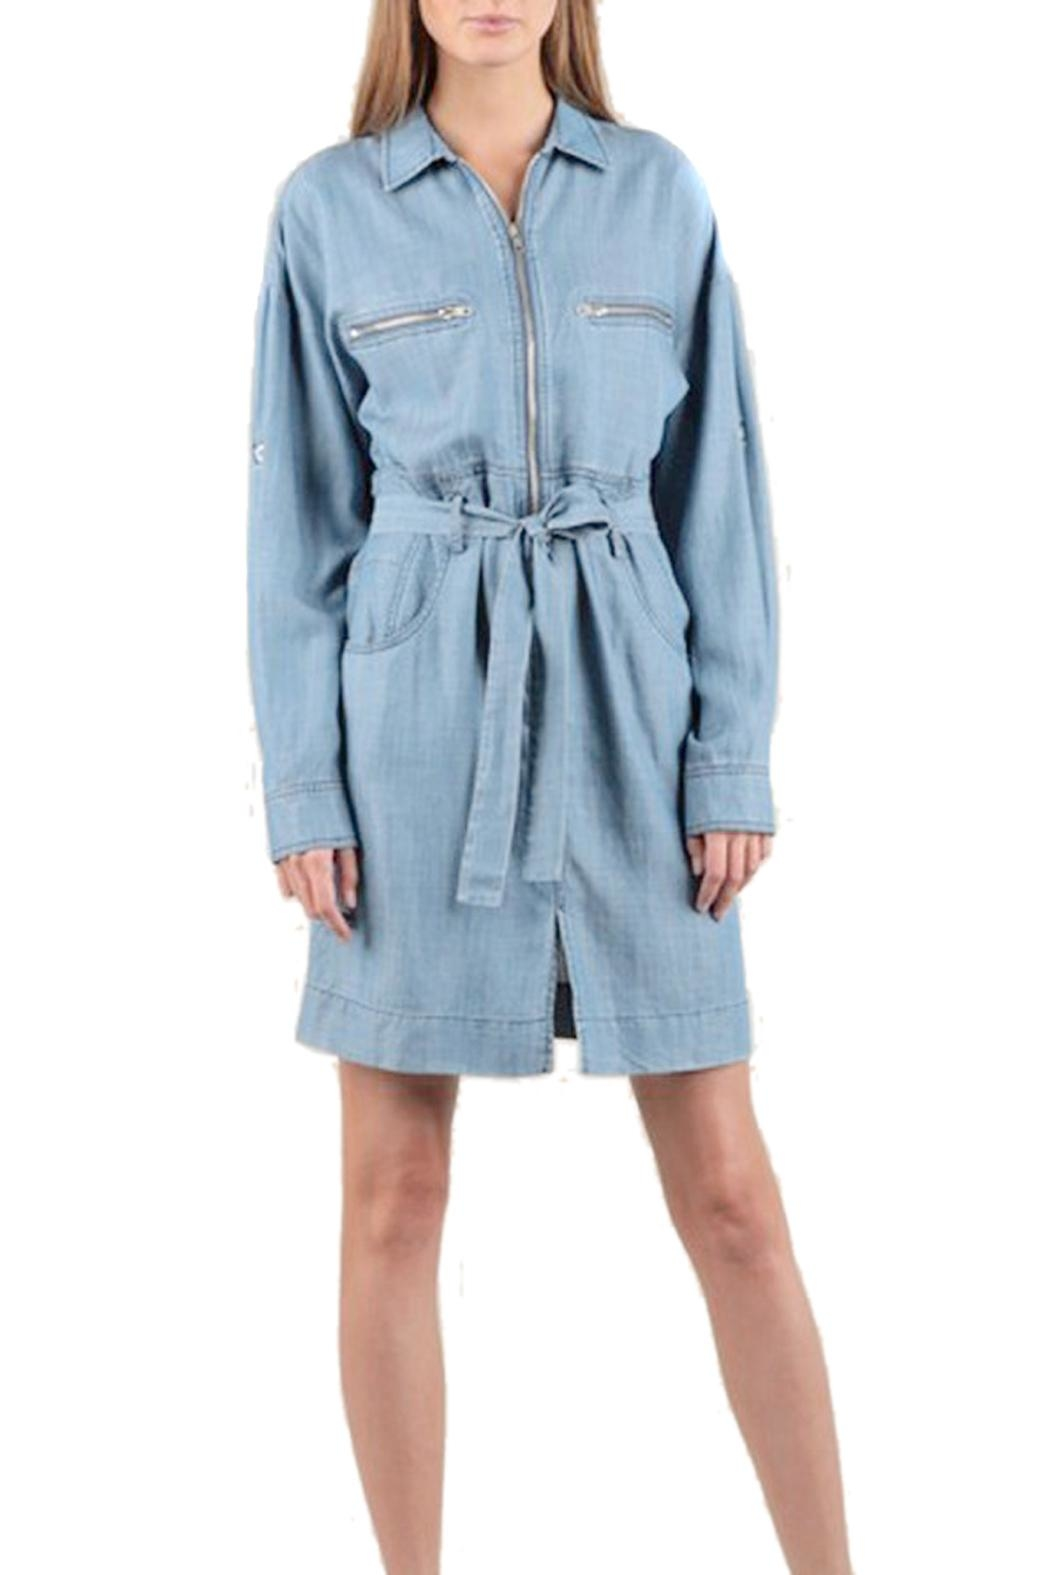 Current Air Tencel Shirt Dress - Front Cropped Image